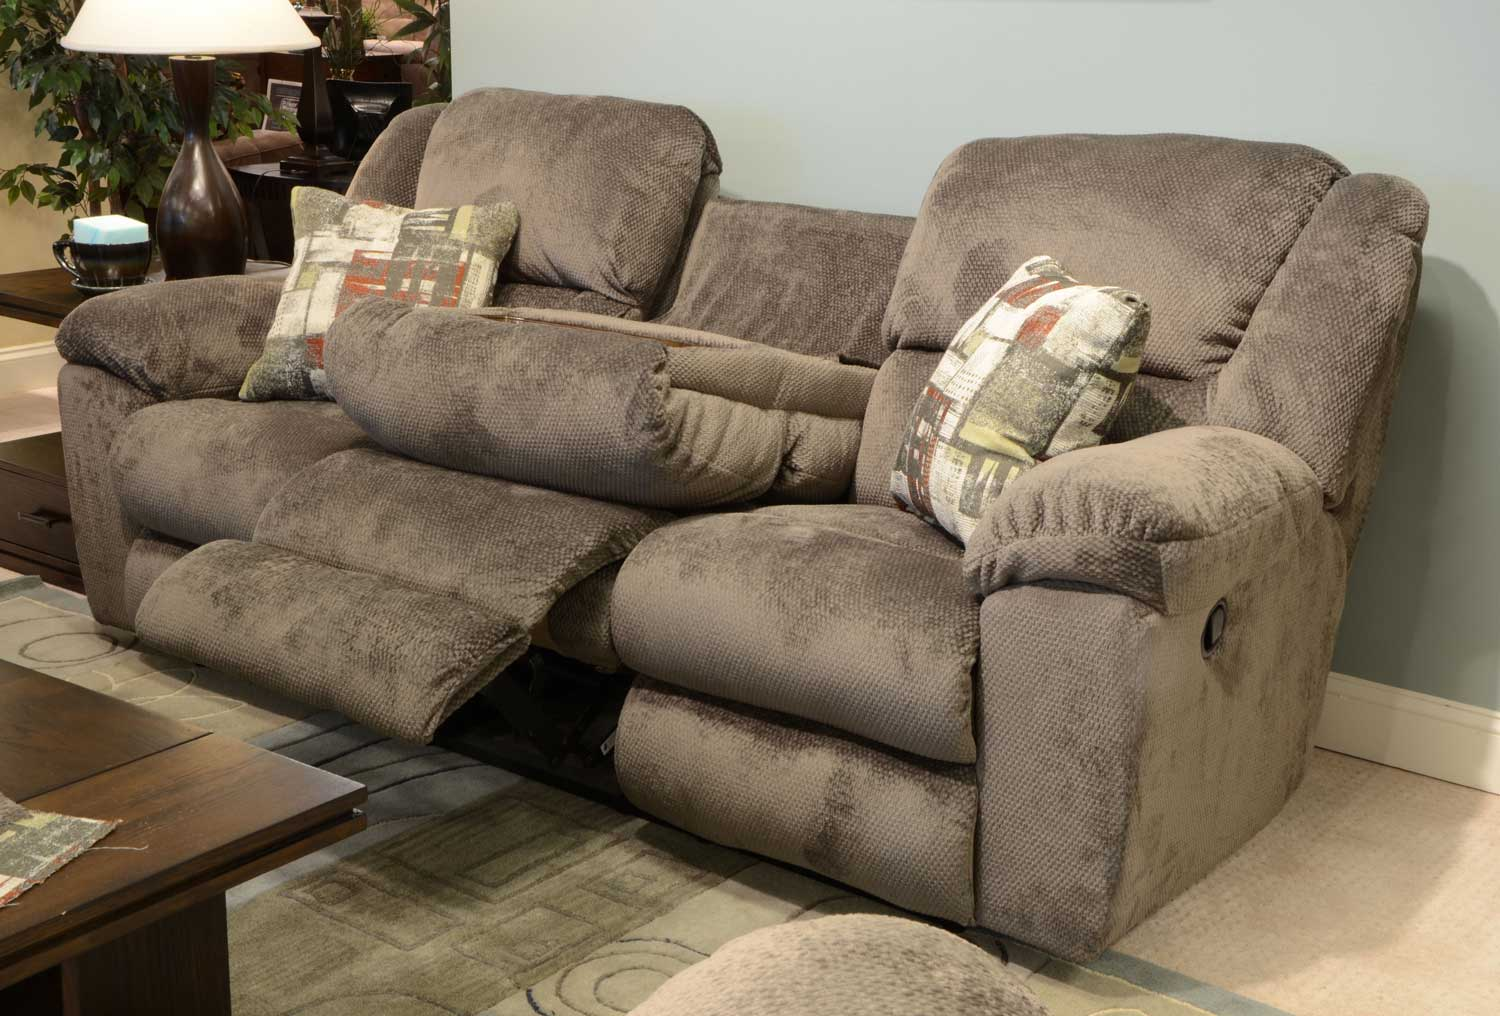 Catnapper transformer ultimate sofa with 3 recliners and 1 drop down table seal cn 19445 seal Catnapper loveseat recliner